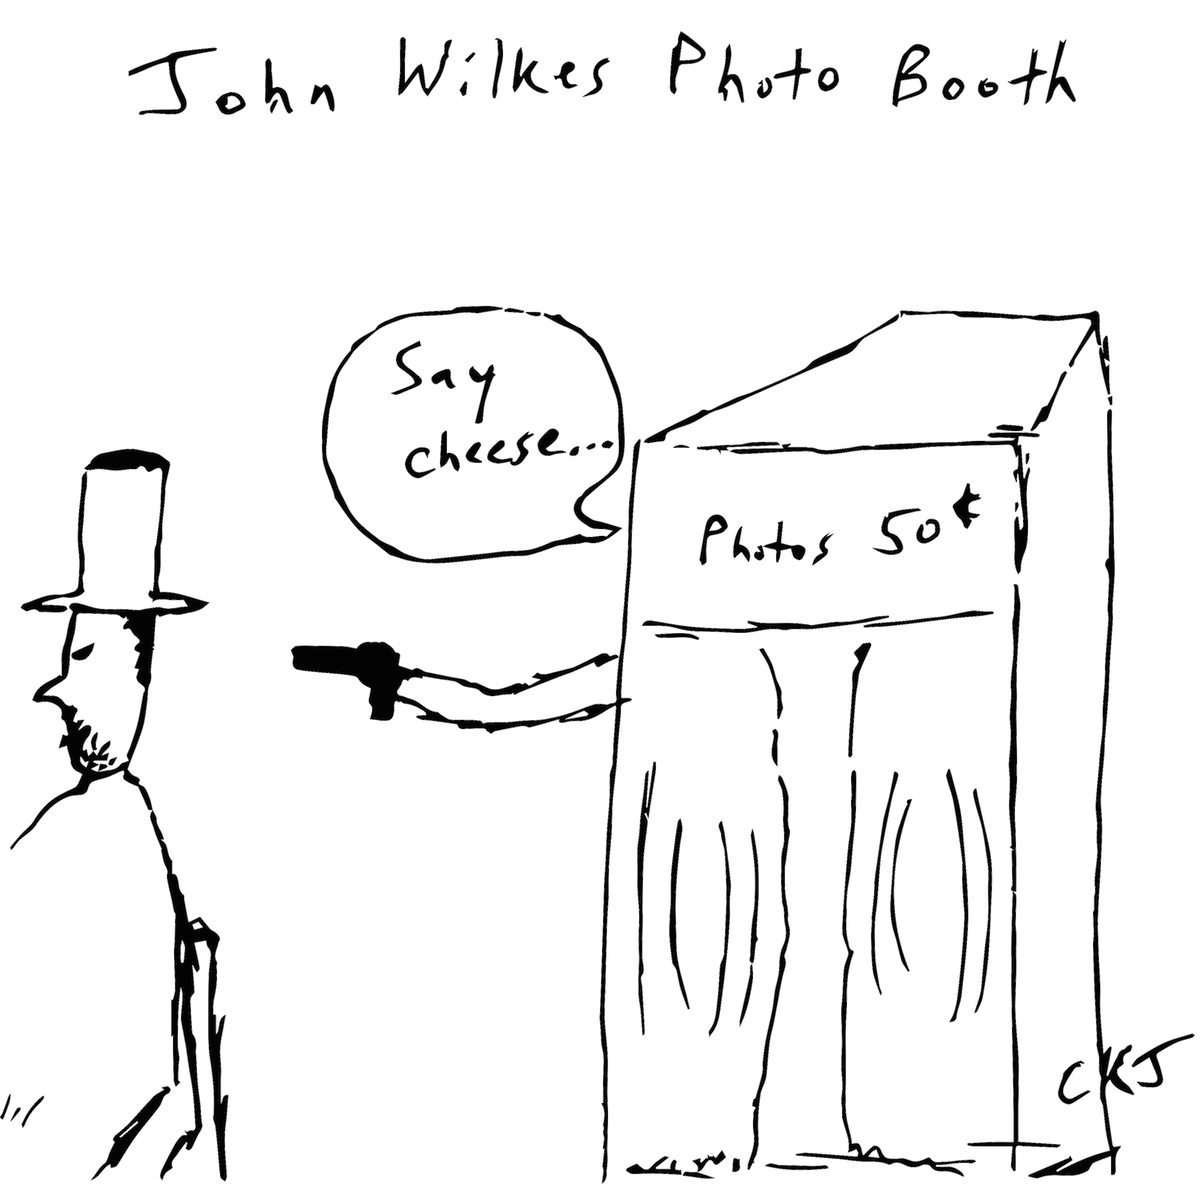 John Wilkes Photo Booth.png